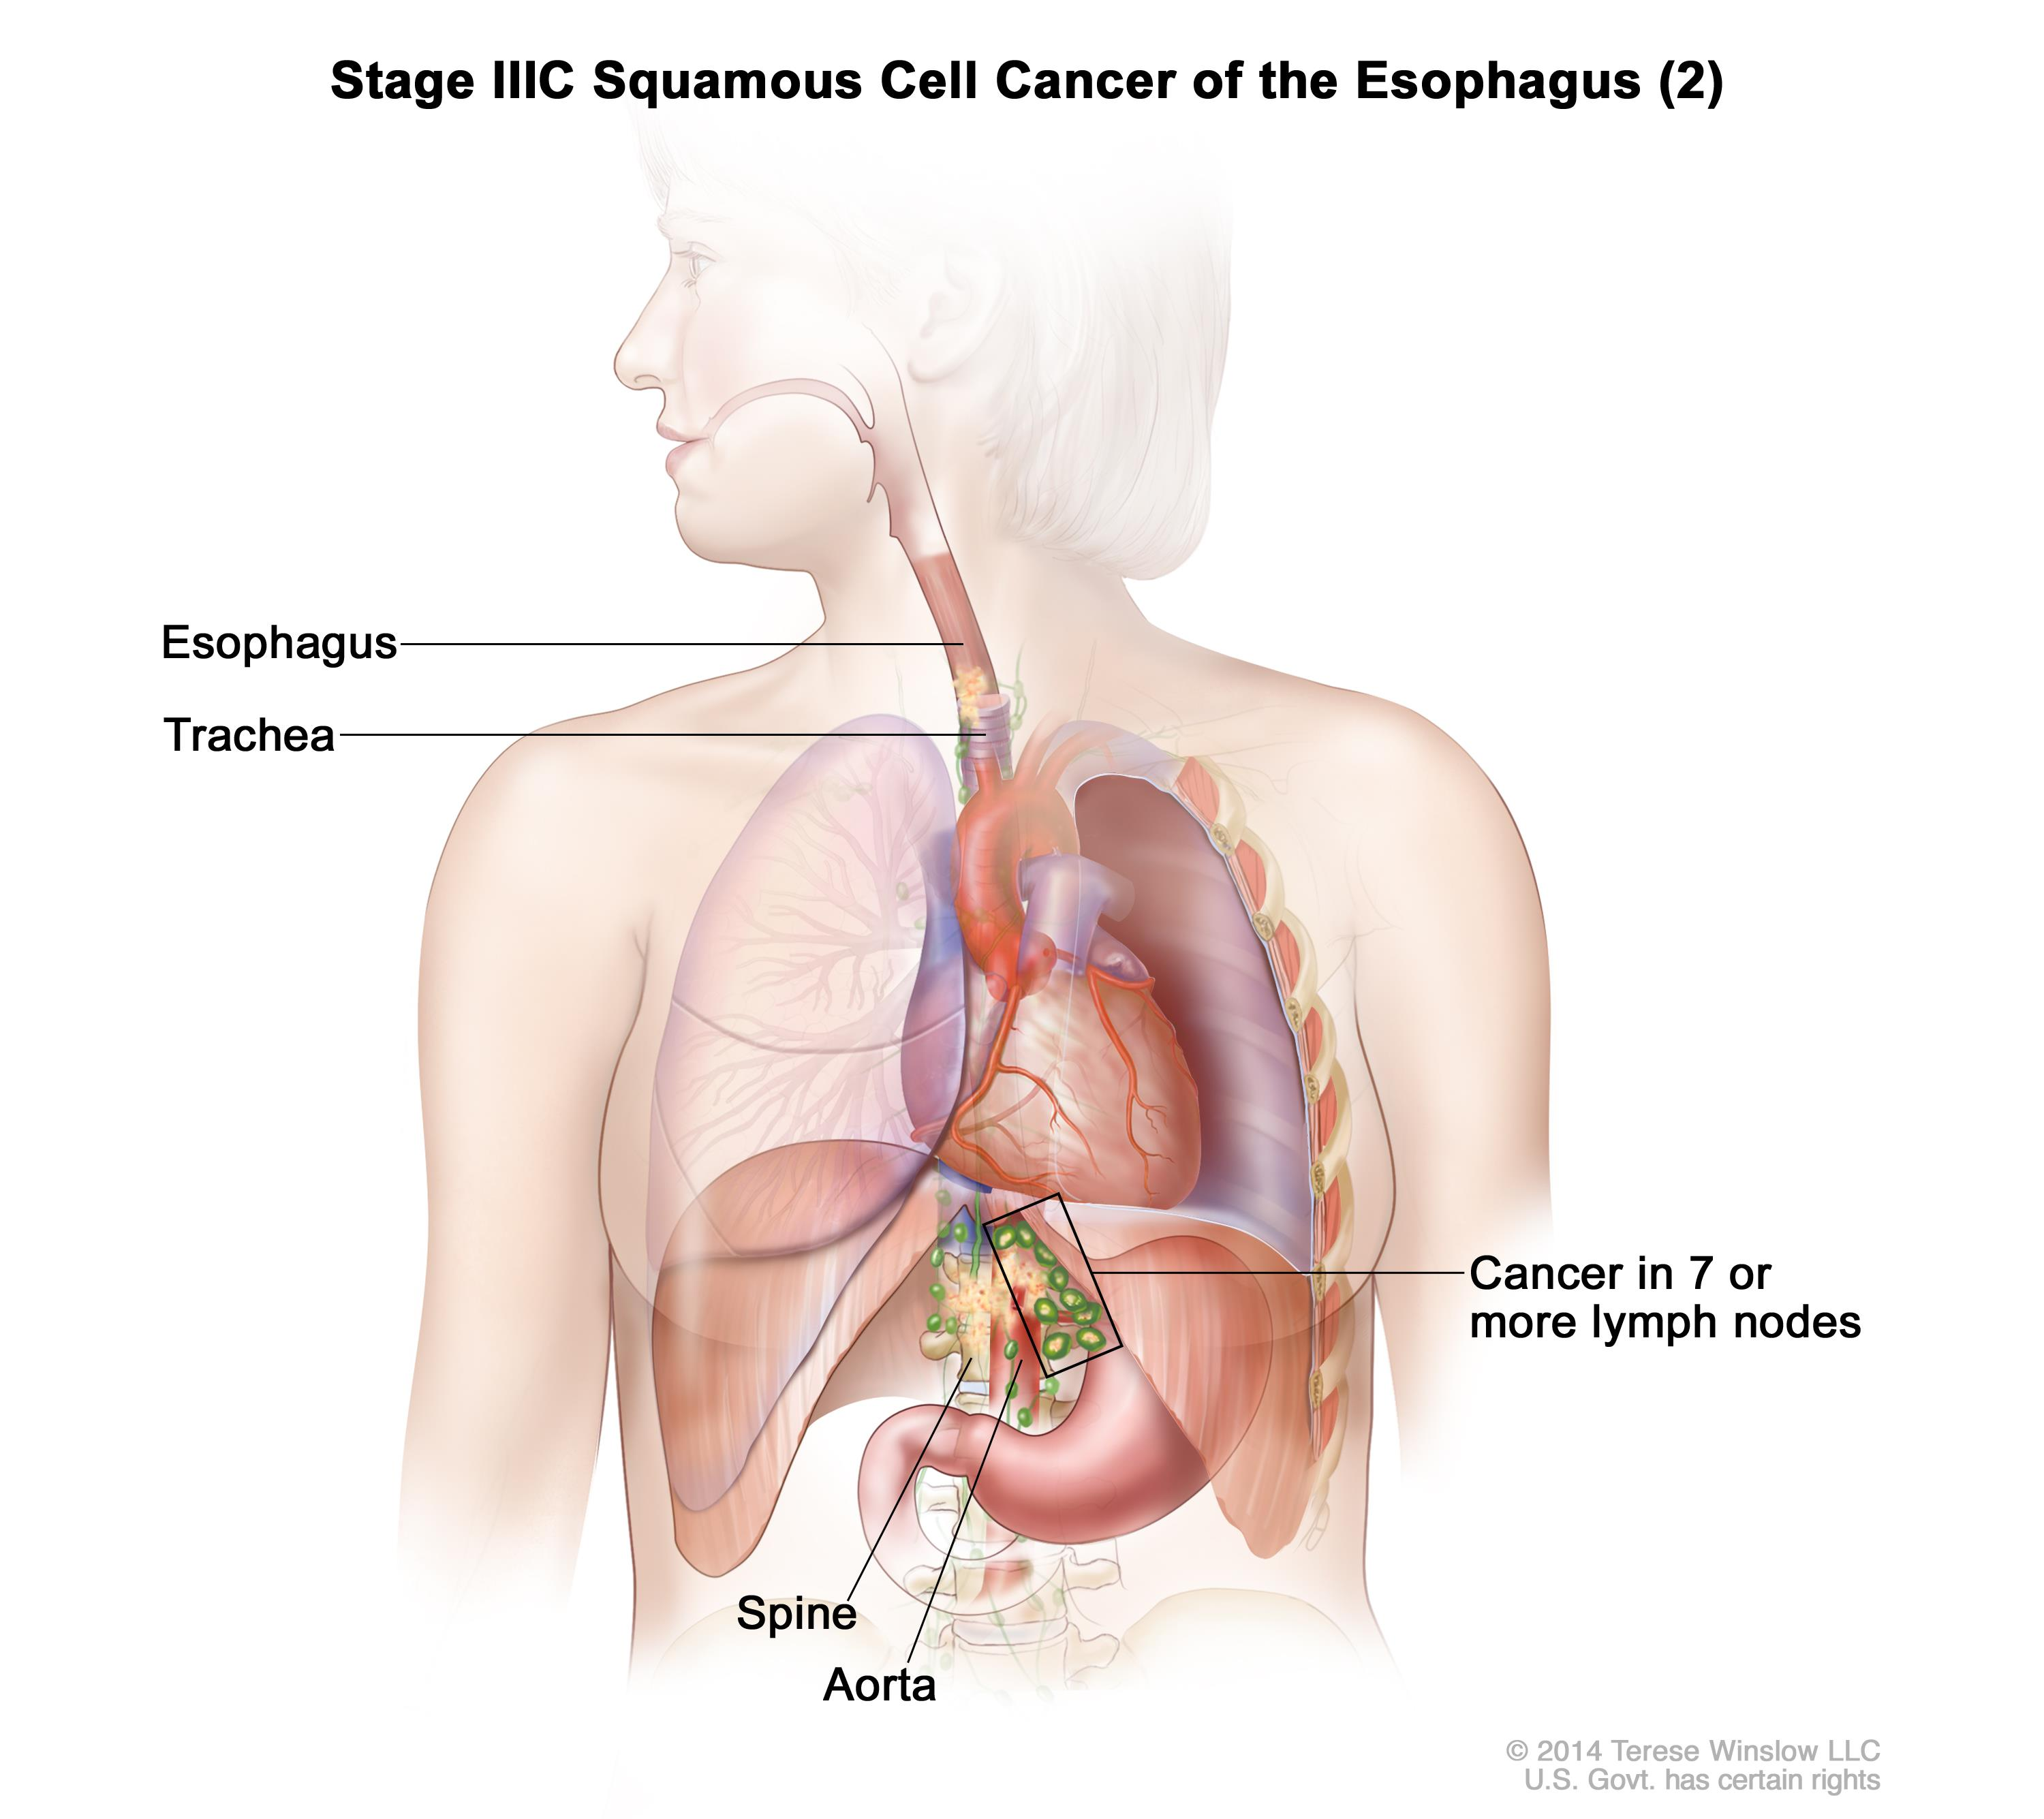 Stage IIIC squamous cell cancer of the esophagus (2); drawing shows cancer that has spread from the esophagus into the trachea, aorta, and spine. Also shown is cancer in lymph nodes near the esophagus.